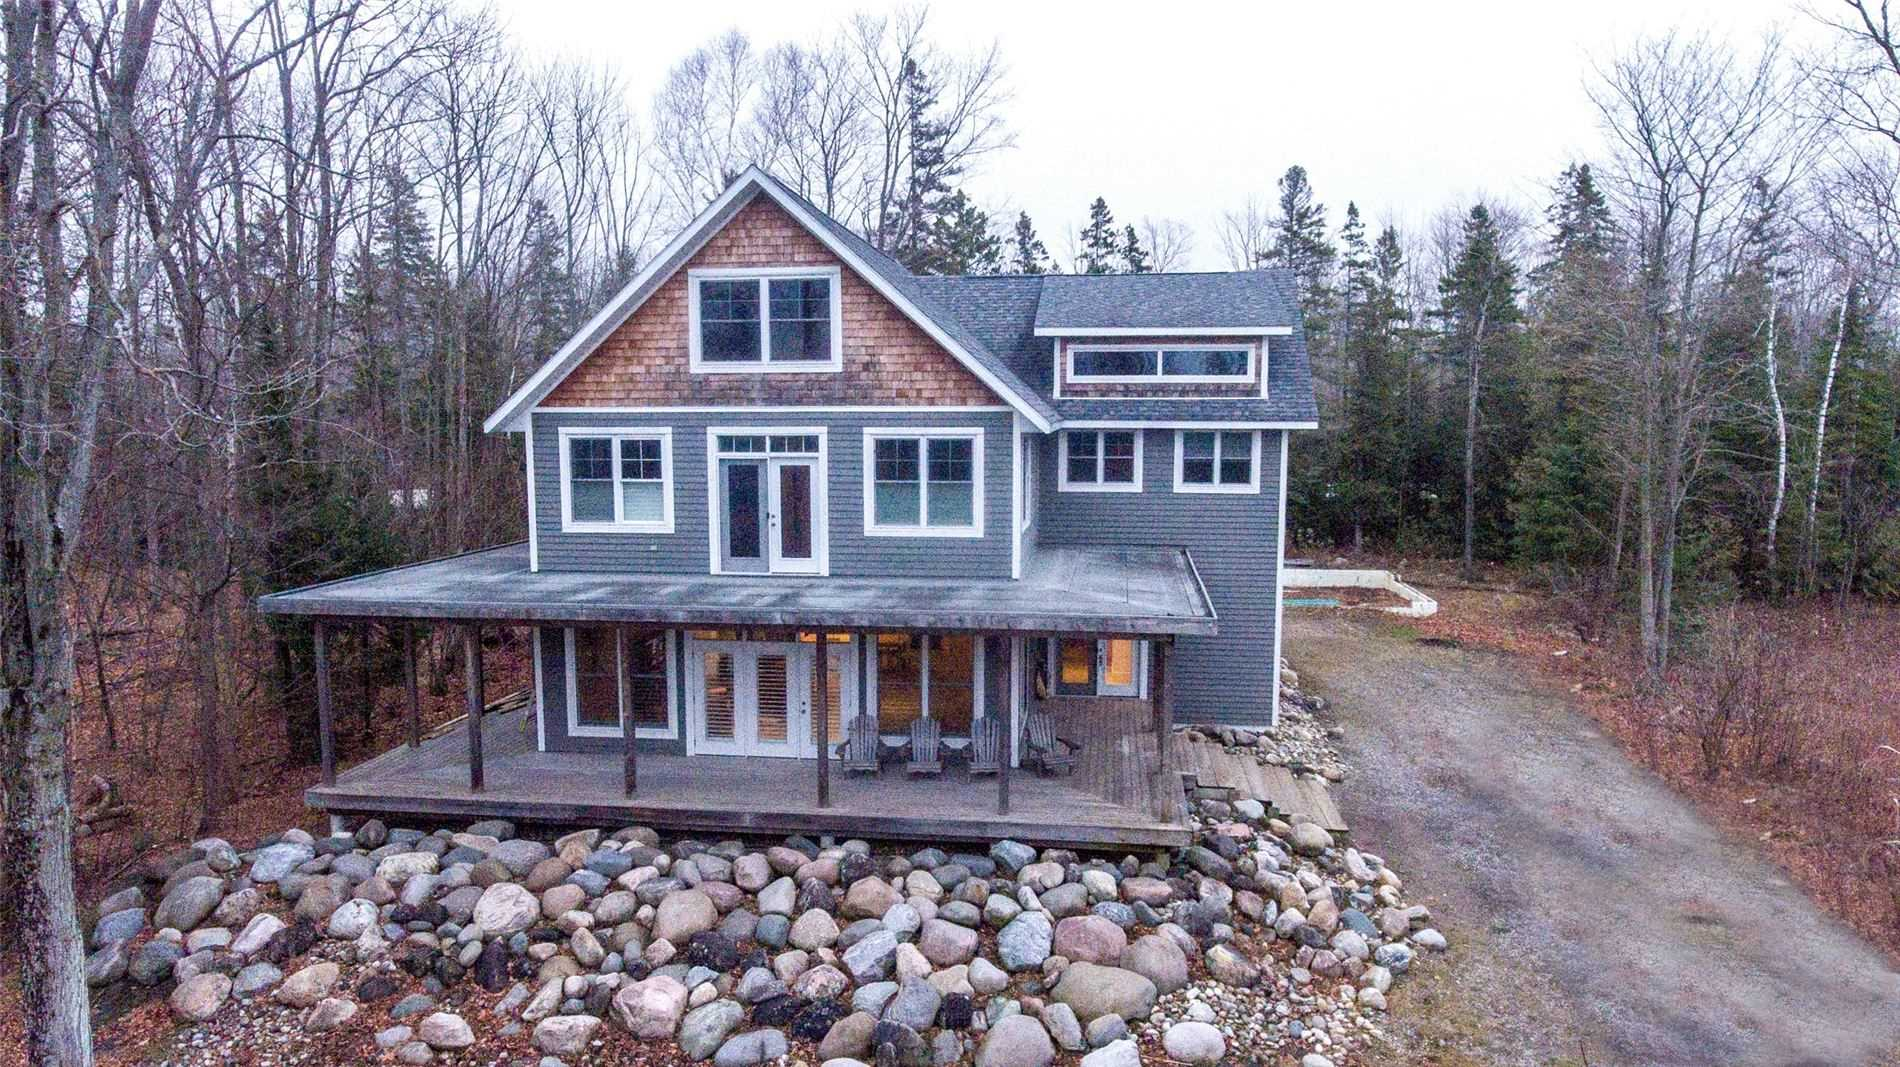 pictures of house for sale MLS: X5066495 located at 545 Eckford Ave, Saugeen Shores N0H2L0